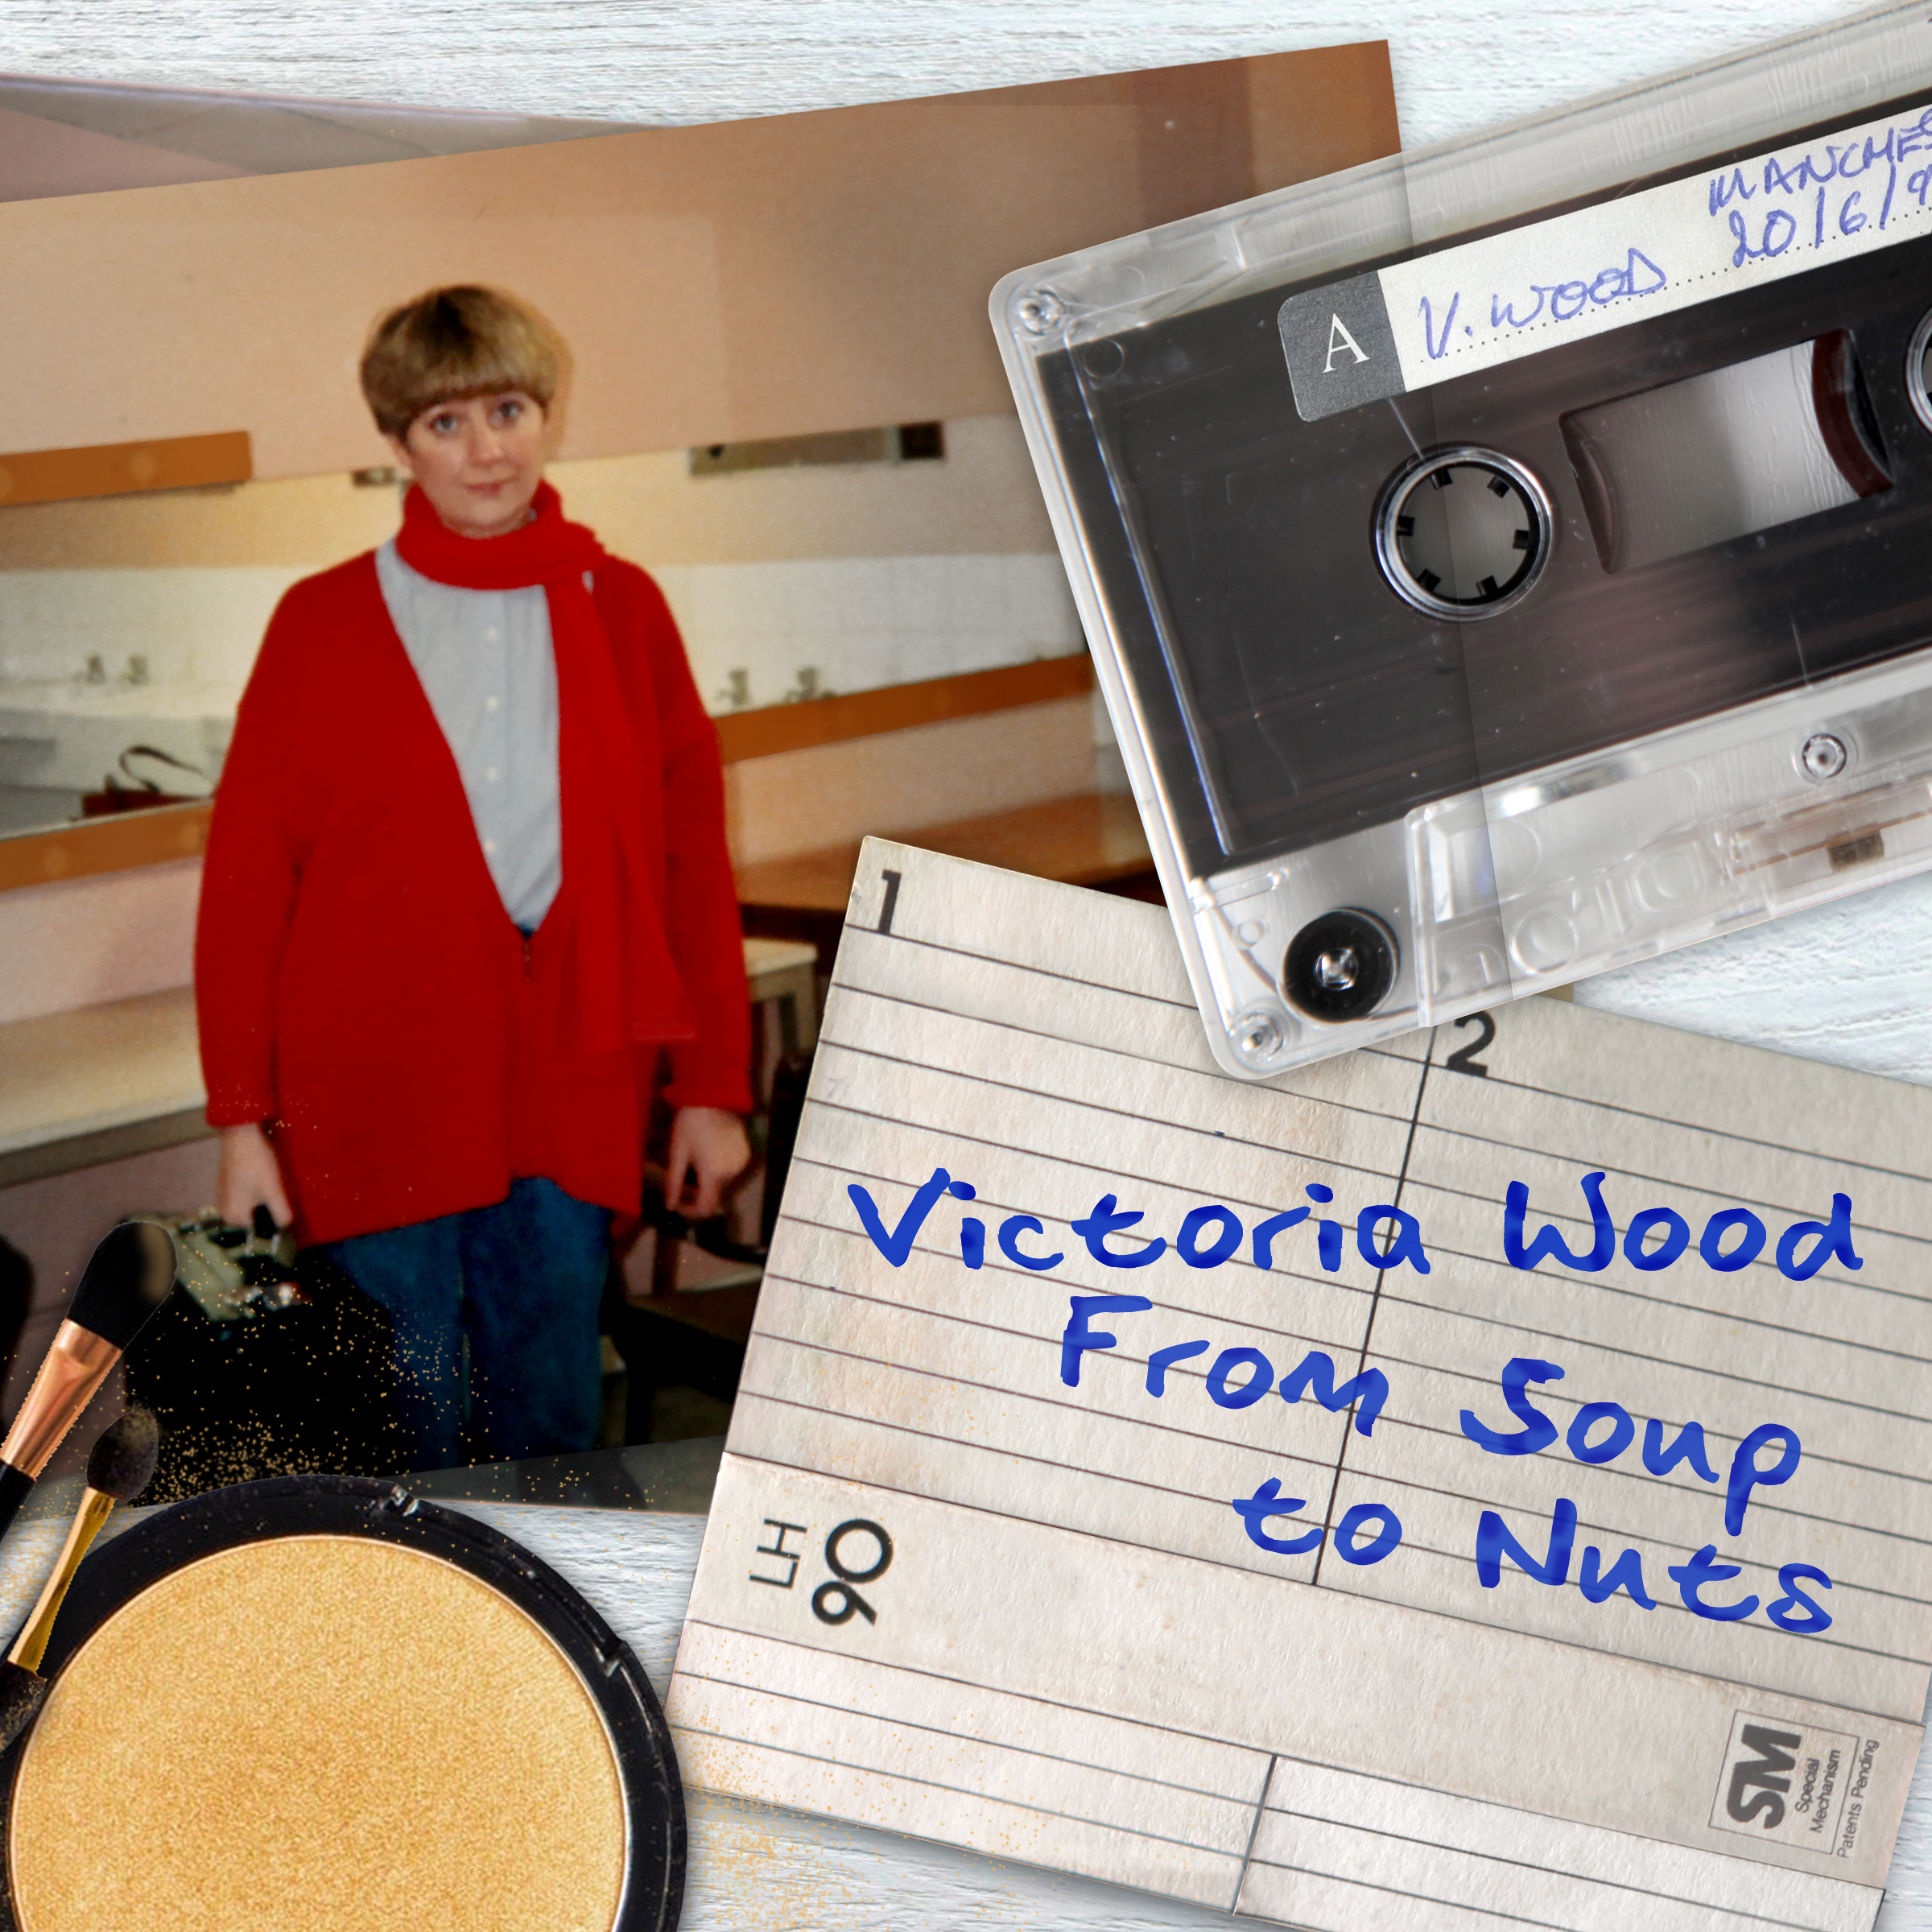 Victoria Wood - From Soup To Nuts